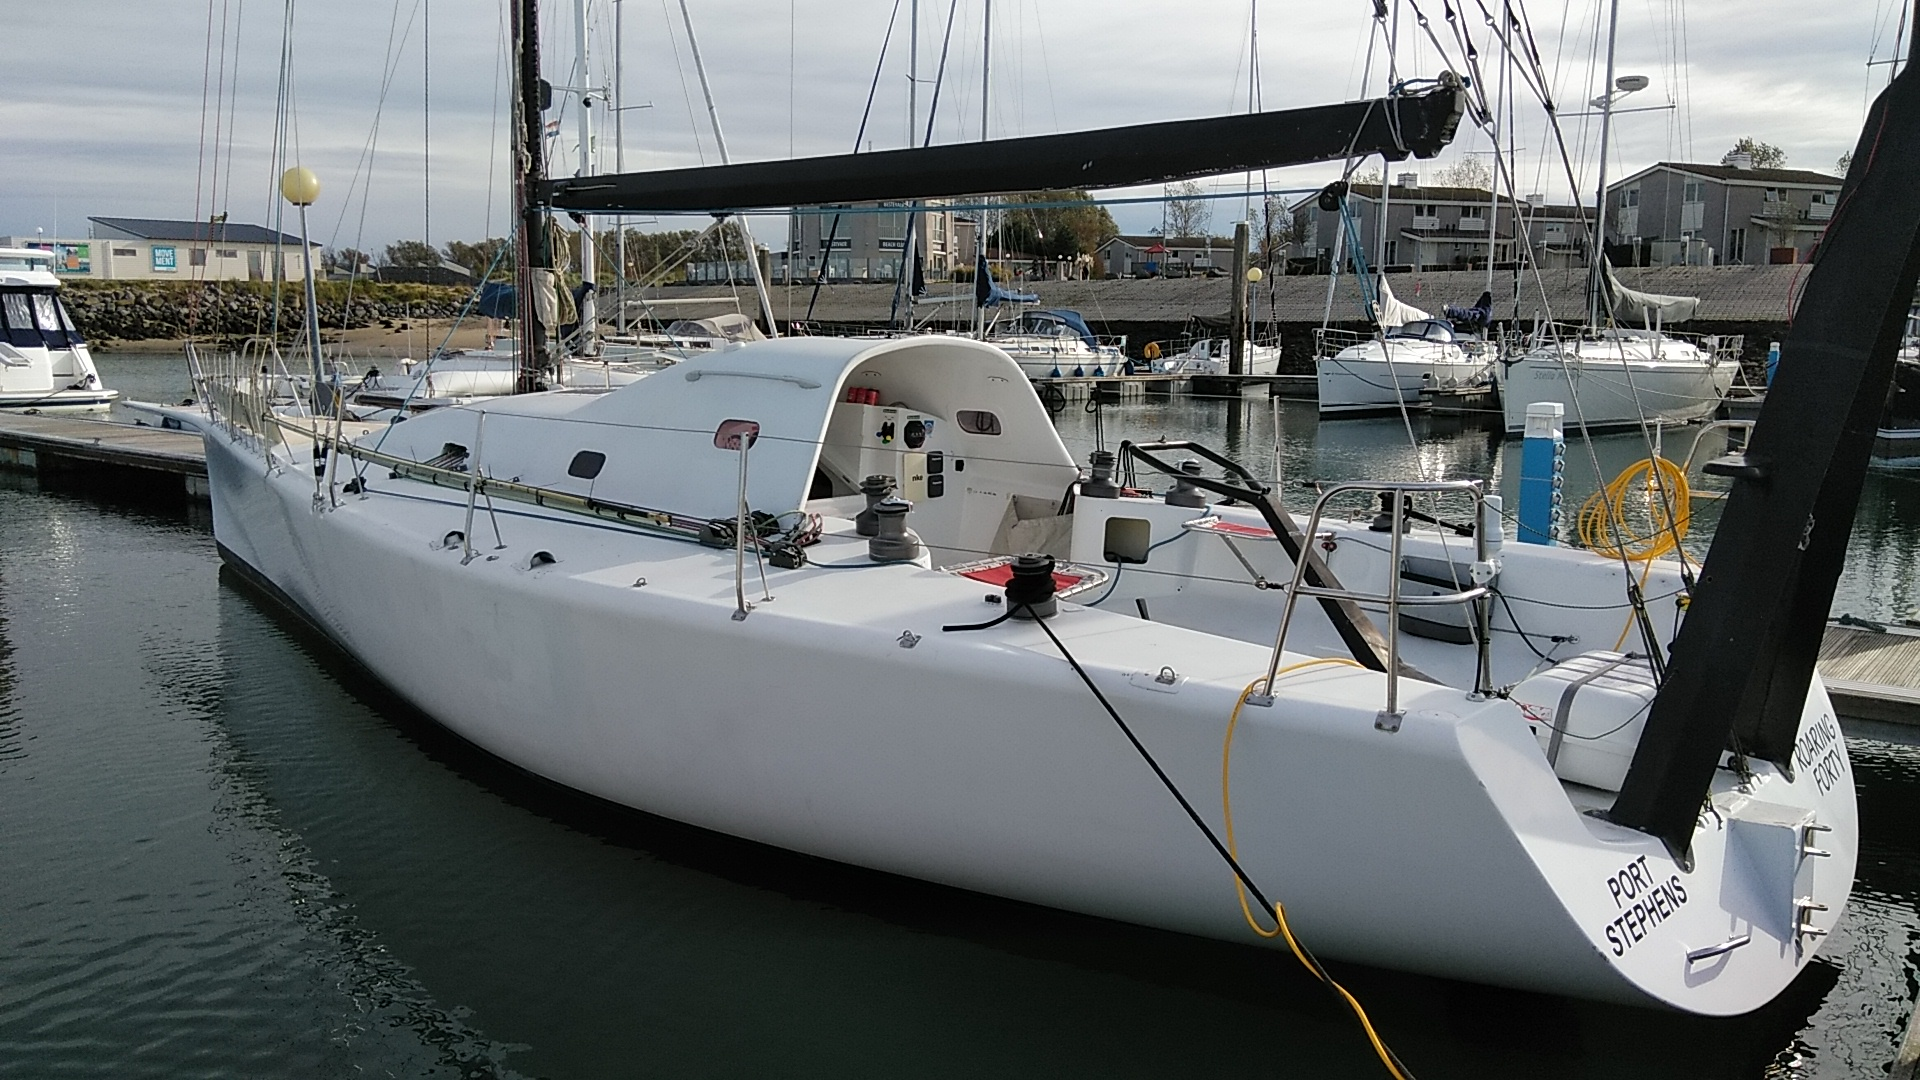 Poidevin's yacht Roaring 40.